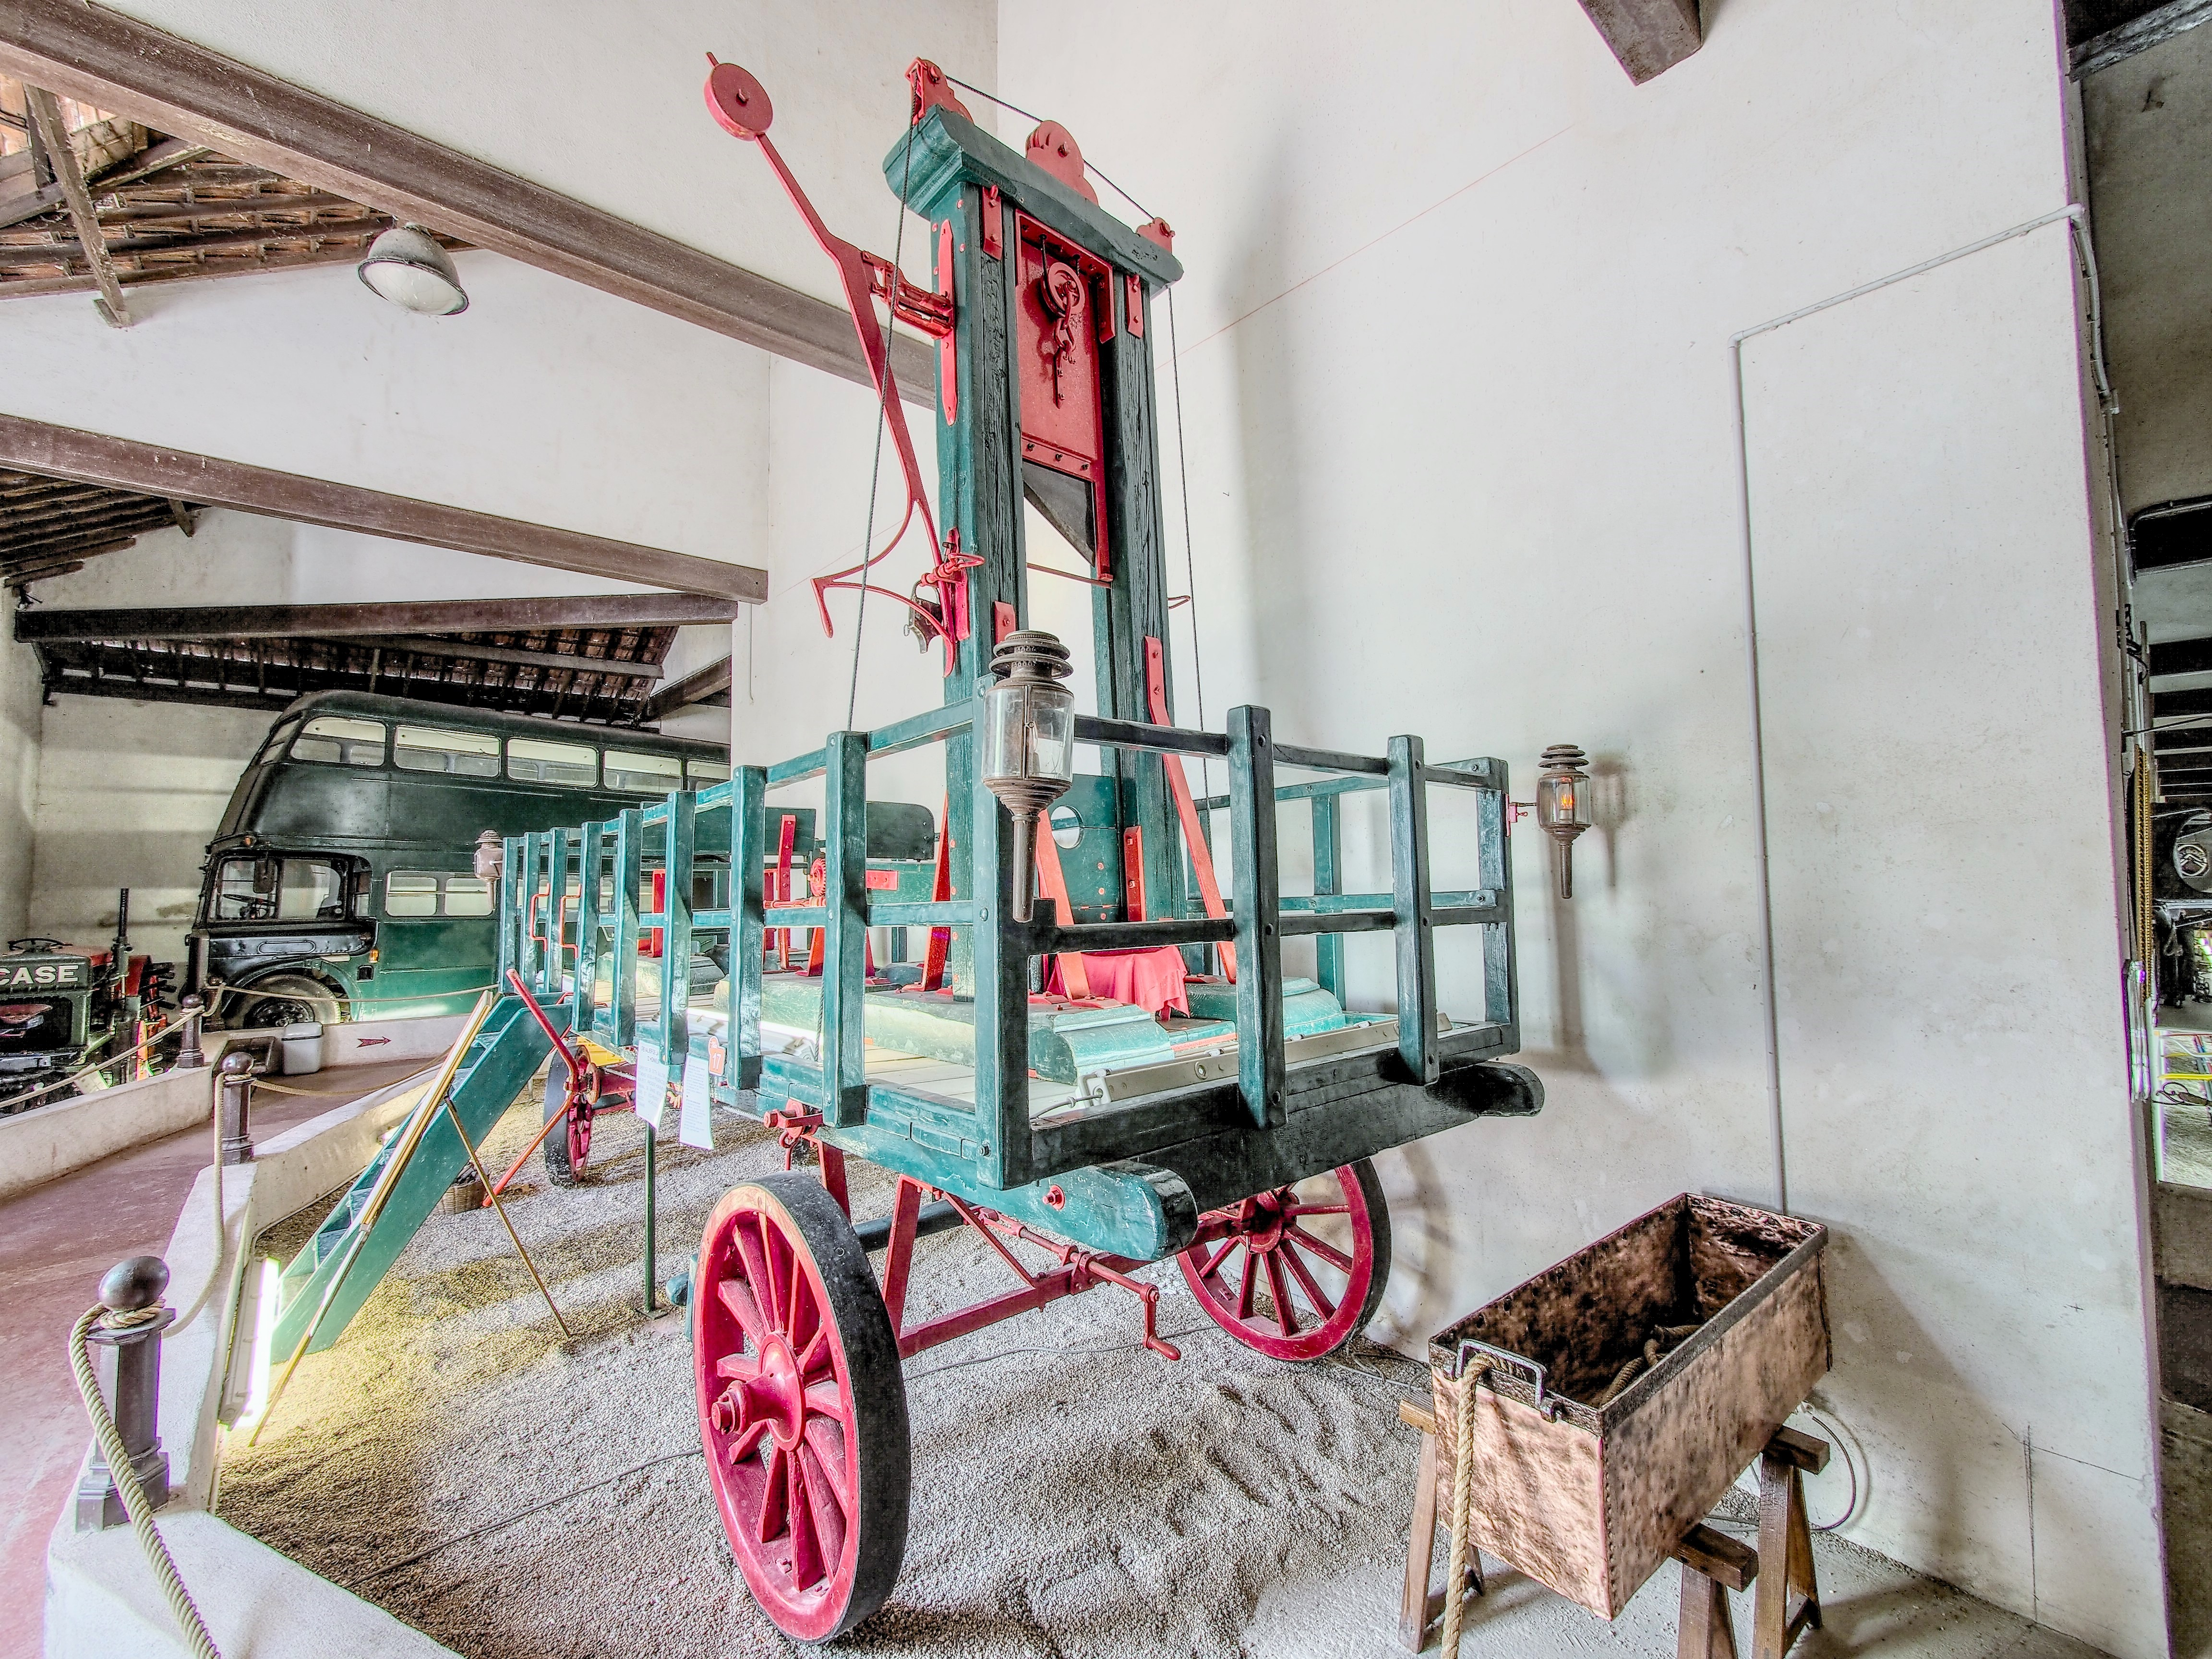 File:1794 guillotine mobile, Musée Maurice Dufresne photo 5.jpg ...